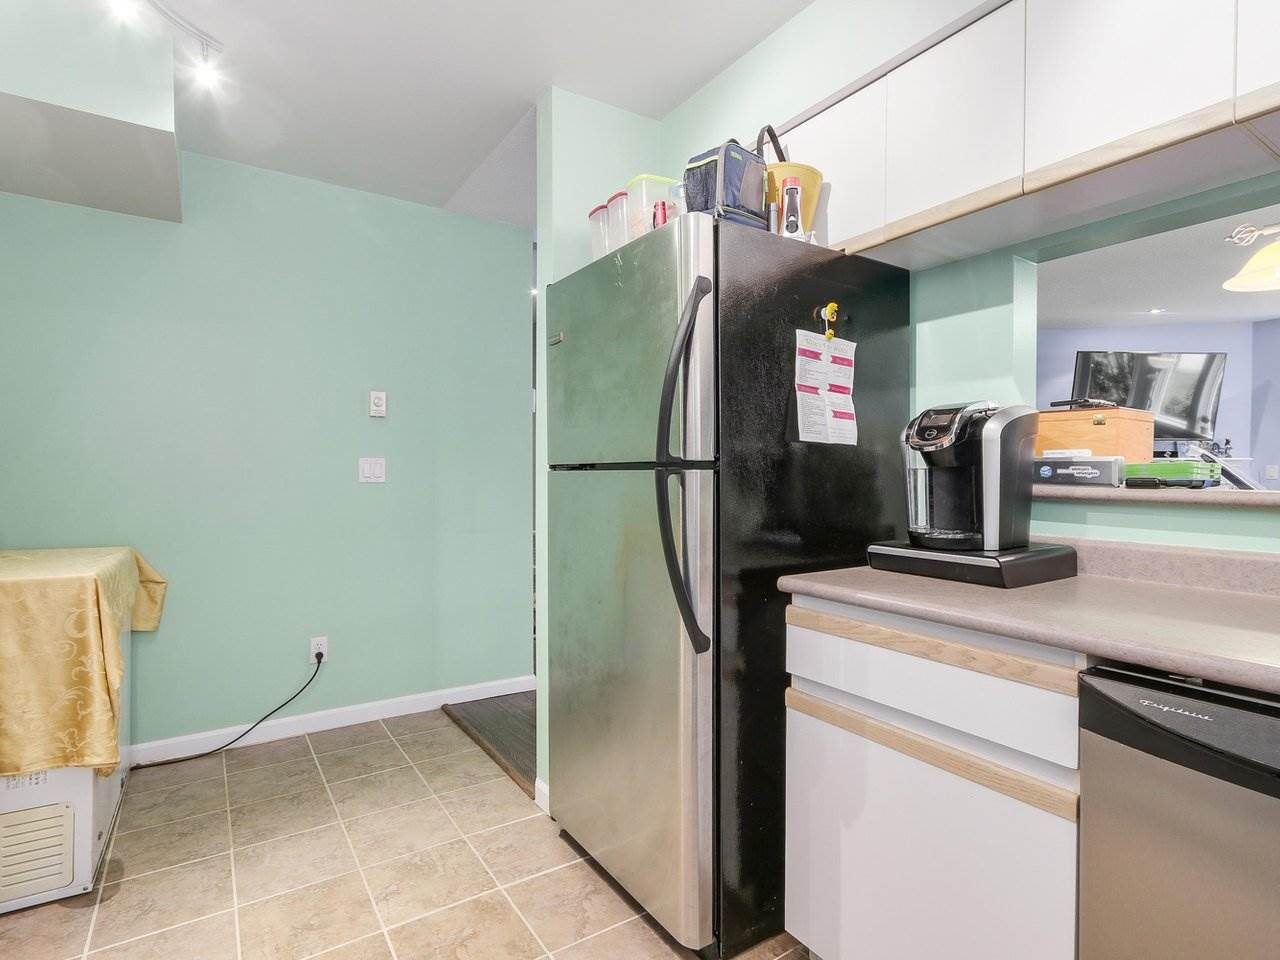 Photo 9: 127 1201 BRUNETTE Avenue in Coquitlam: Maillardville Townhouse for sale : MLS(r) # R2162178